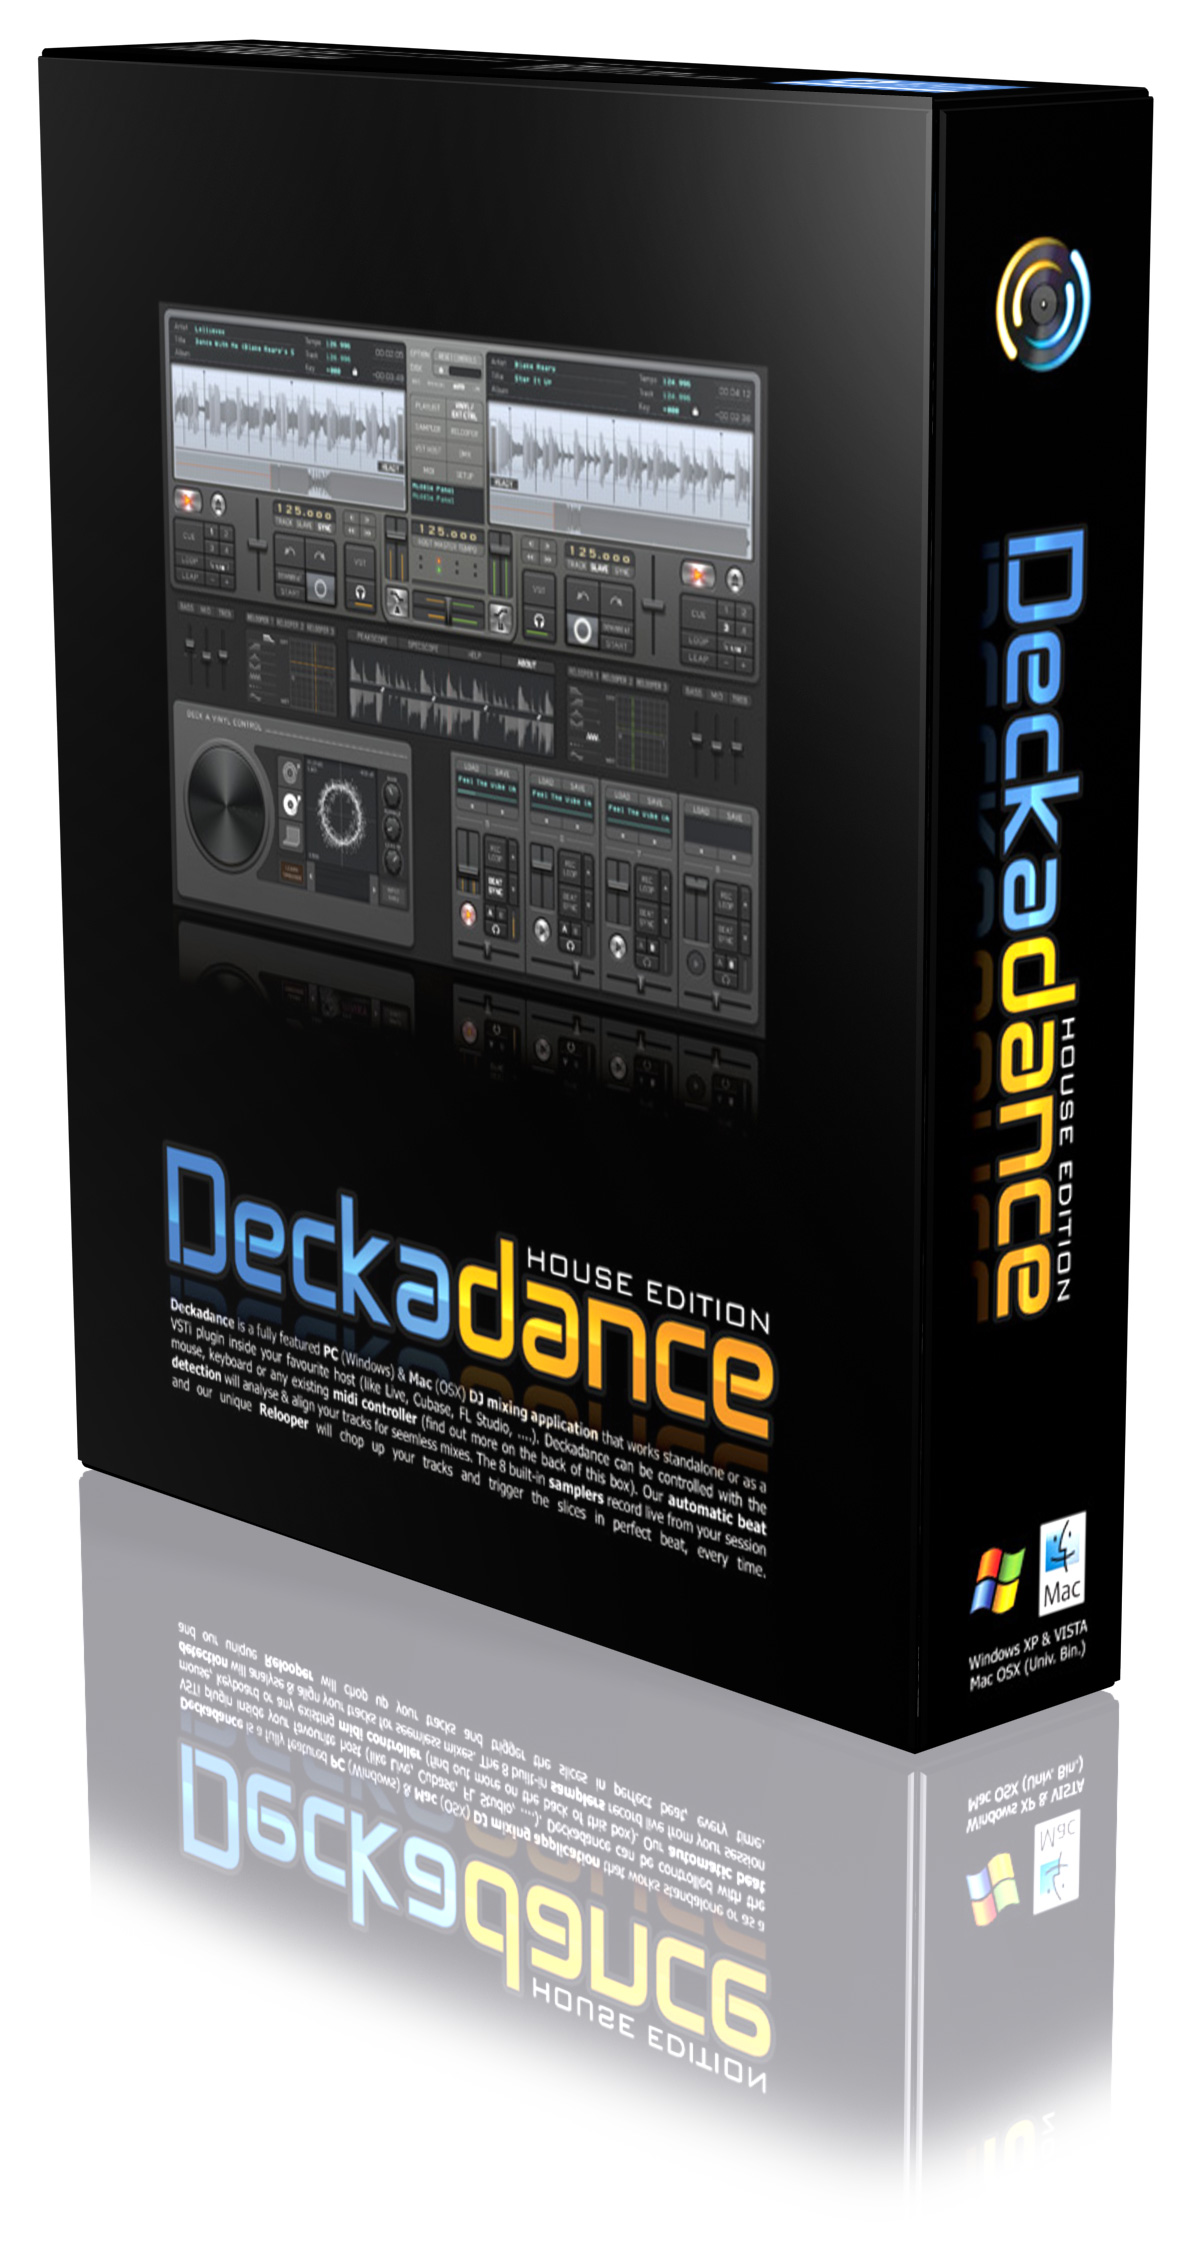 Image Line Software Updates Its Dj Mixing Software